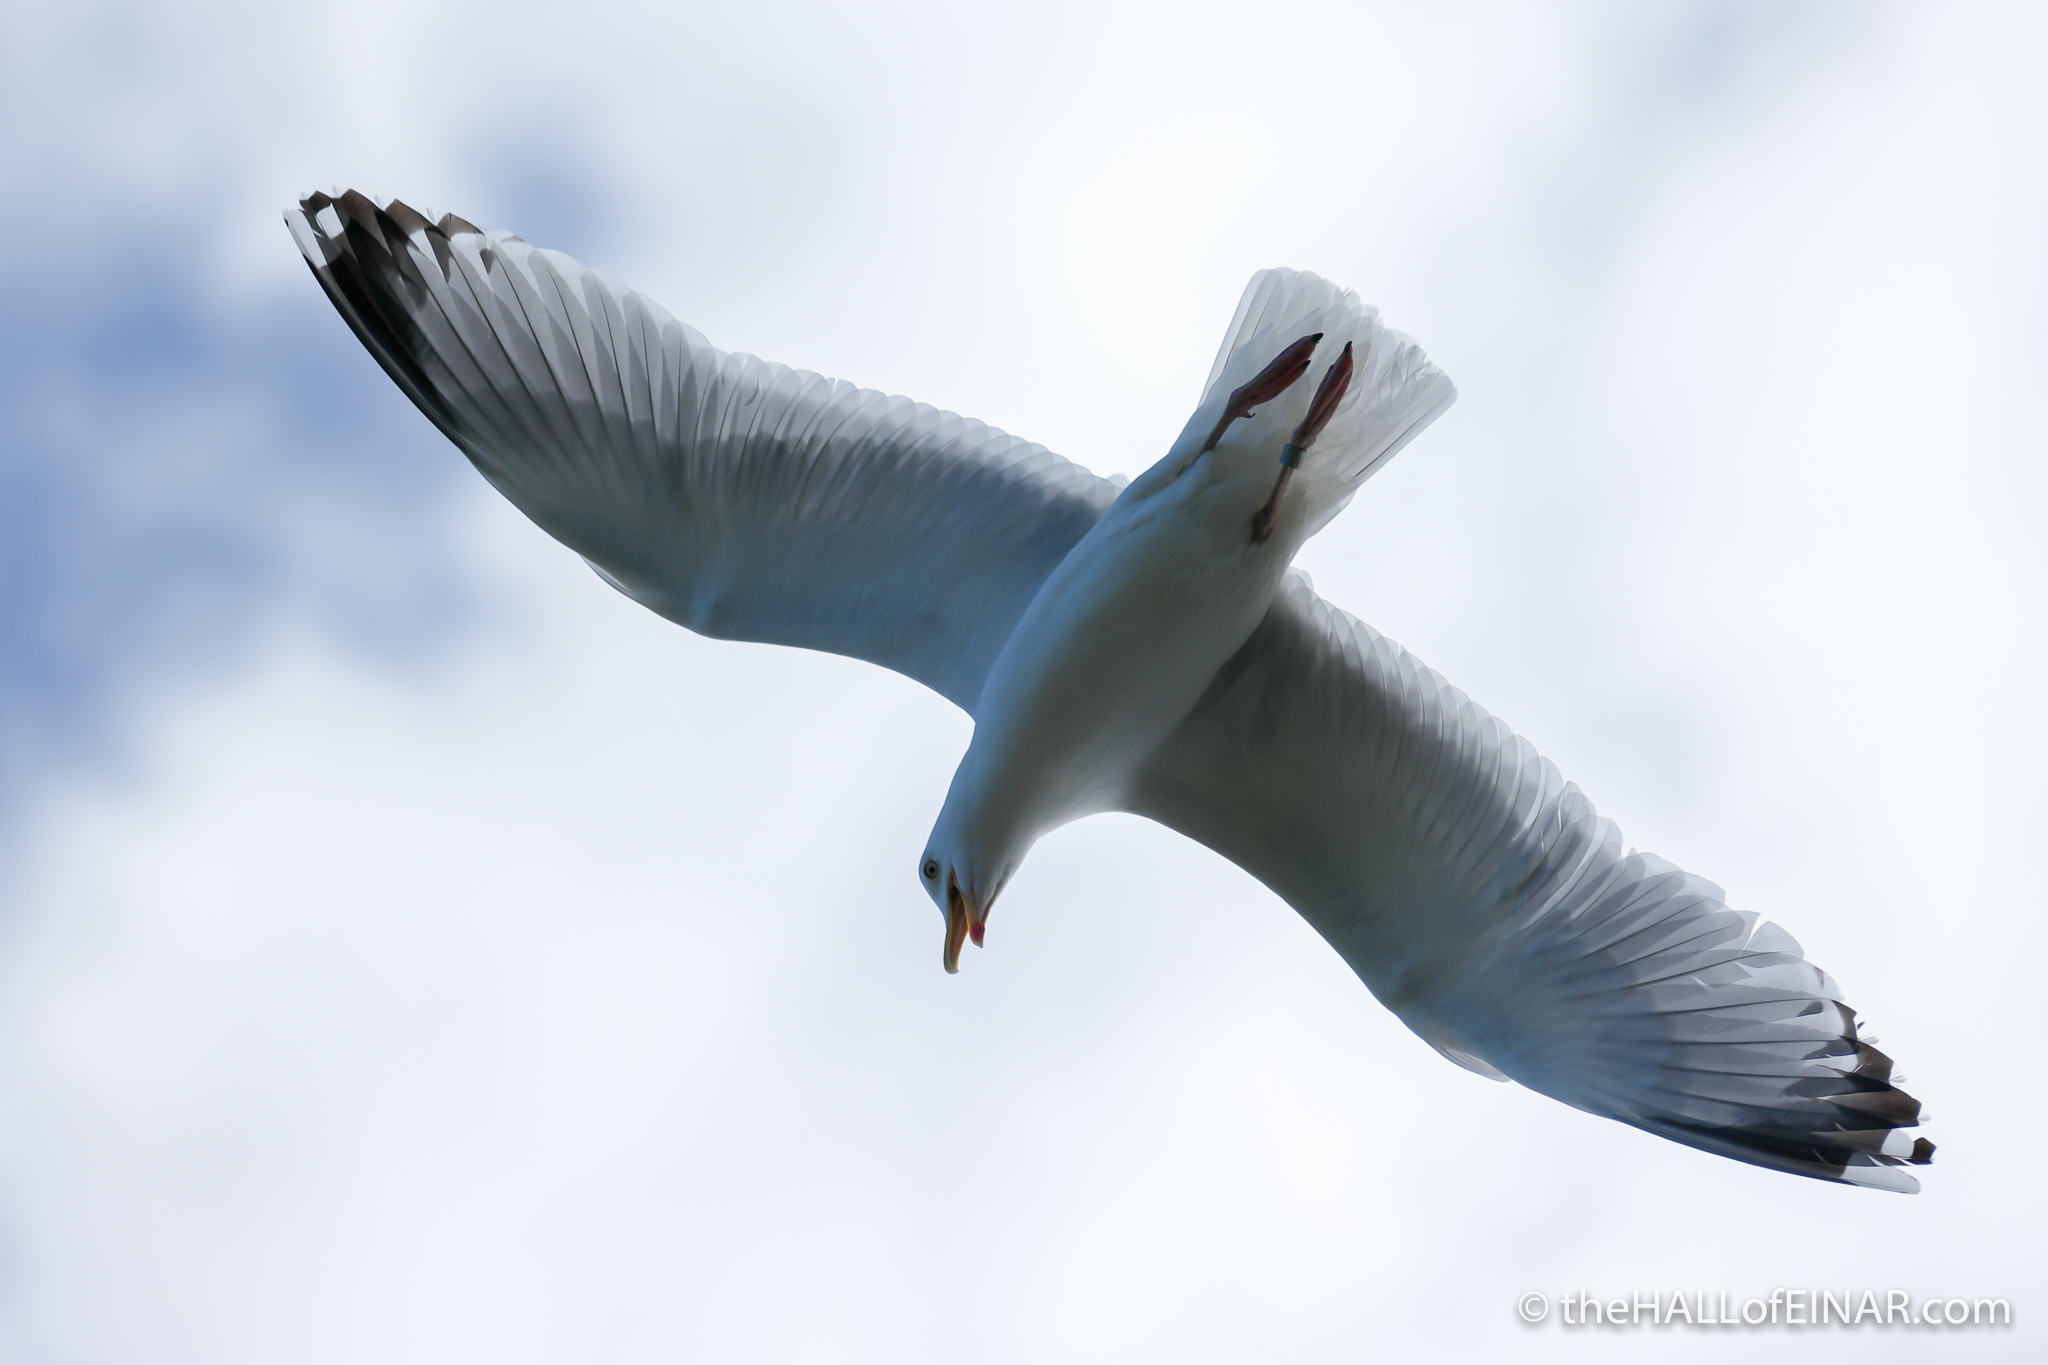 Gull - The Hall of Einar - photograph (c) David Bailey (not the)